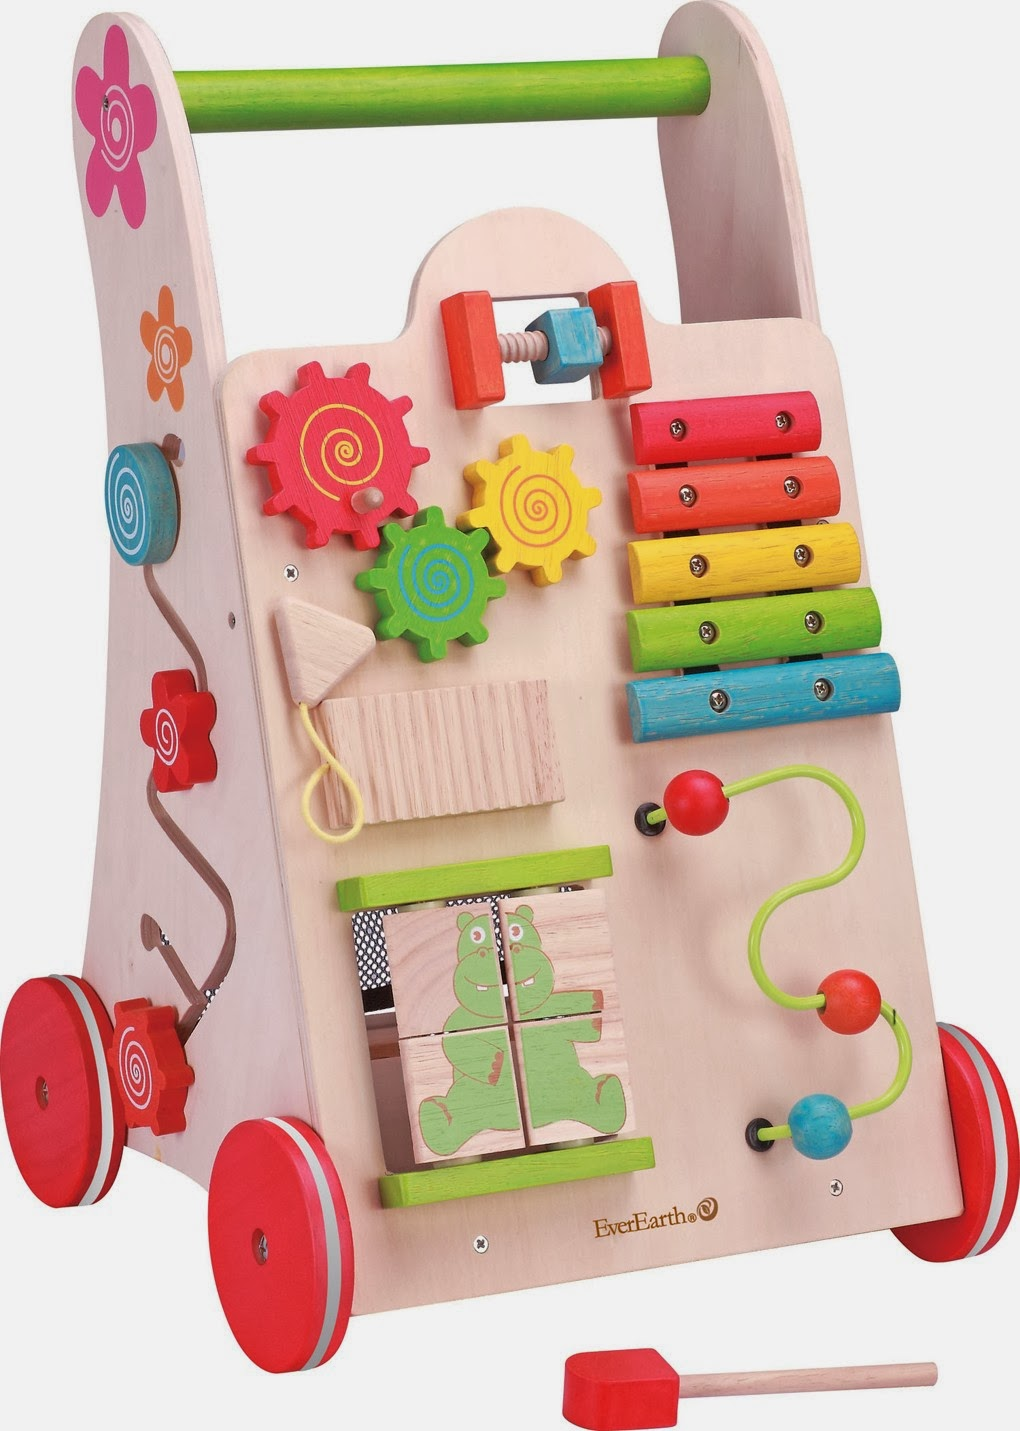 Toddlers Wooden Activity Walker yY EverEarth